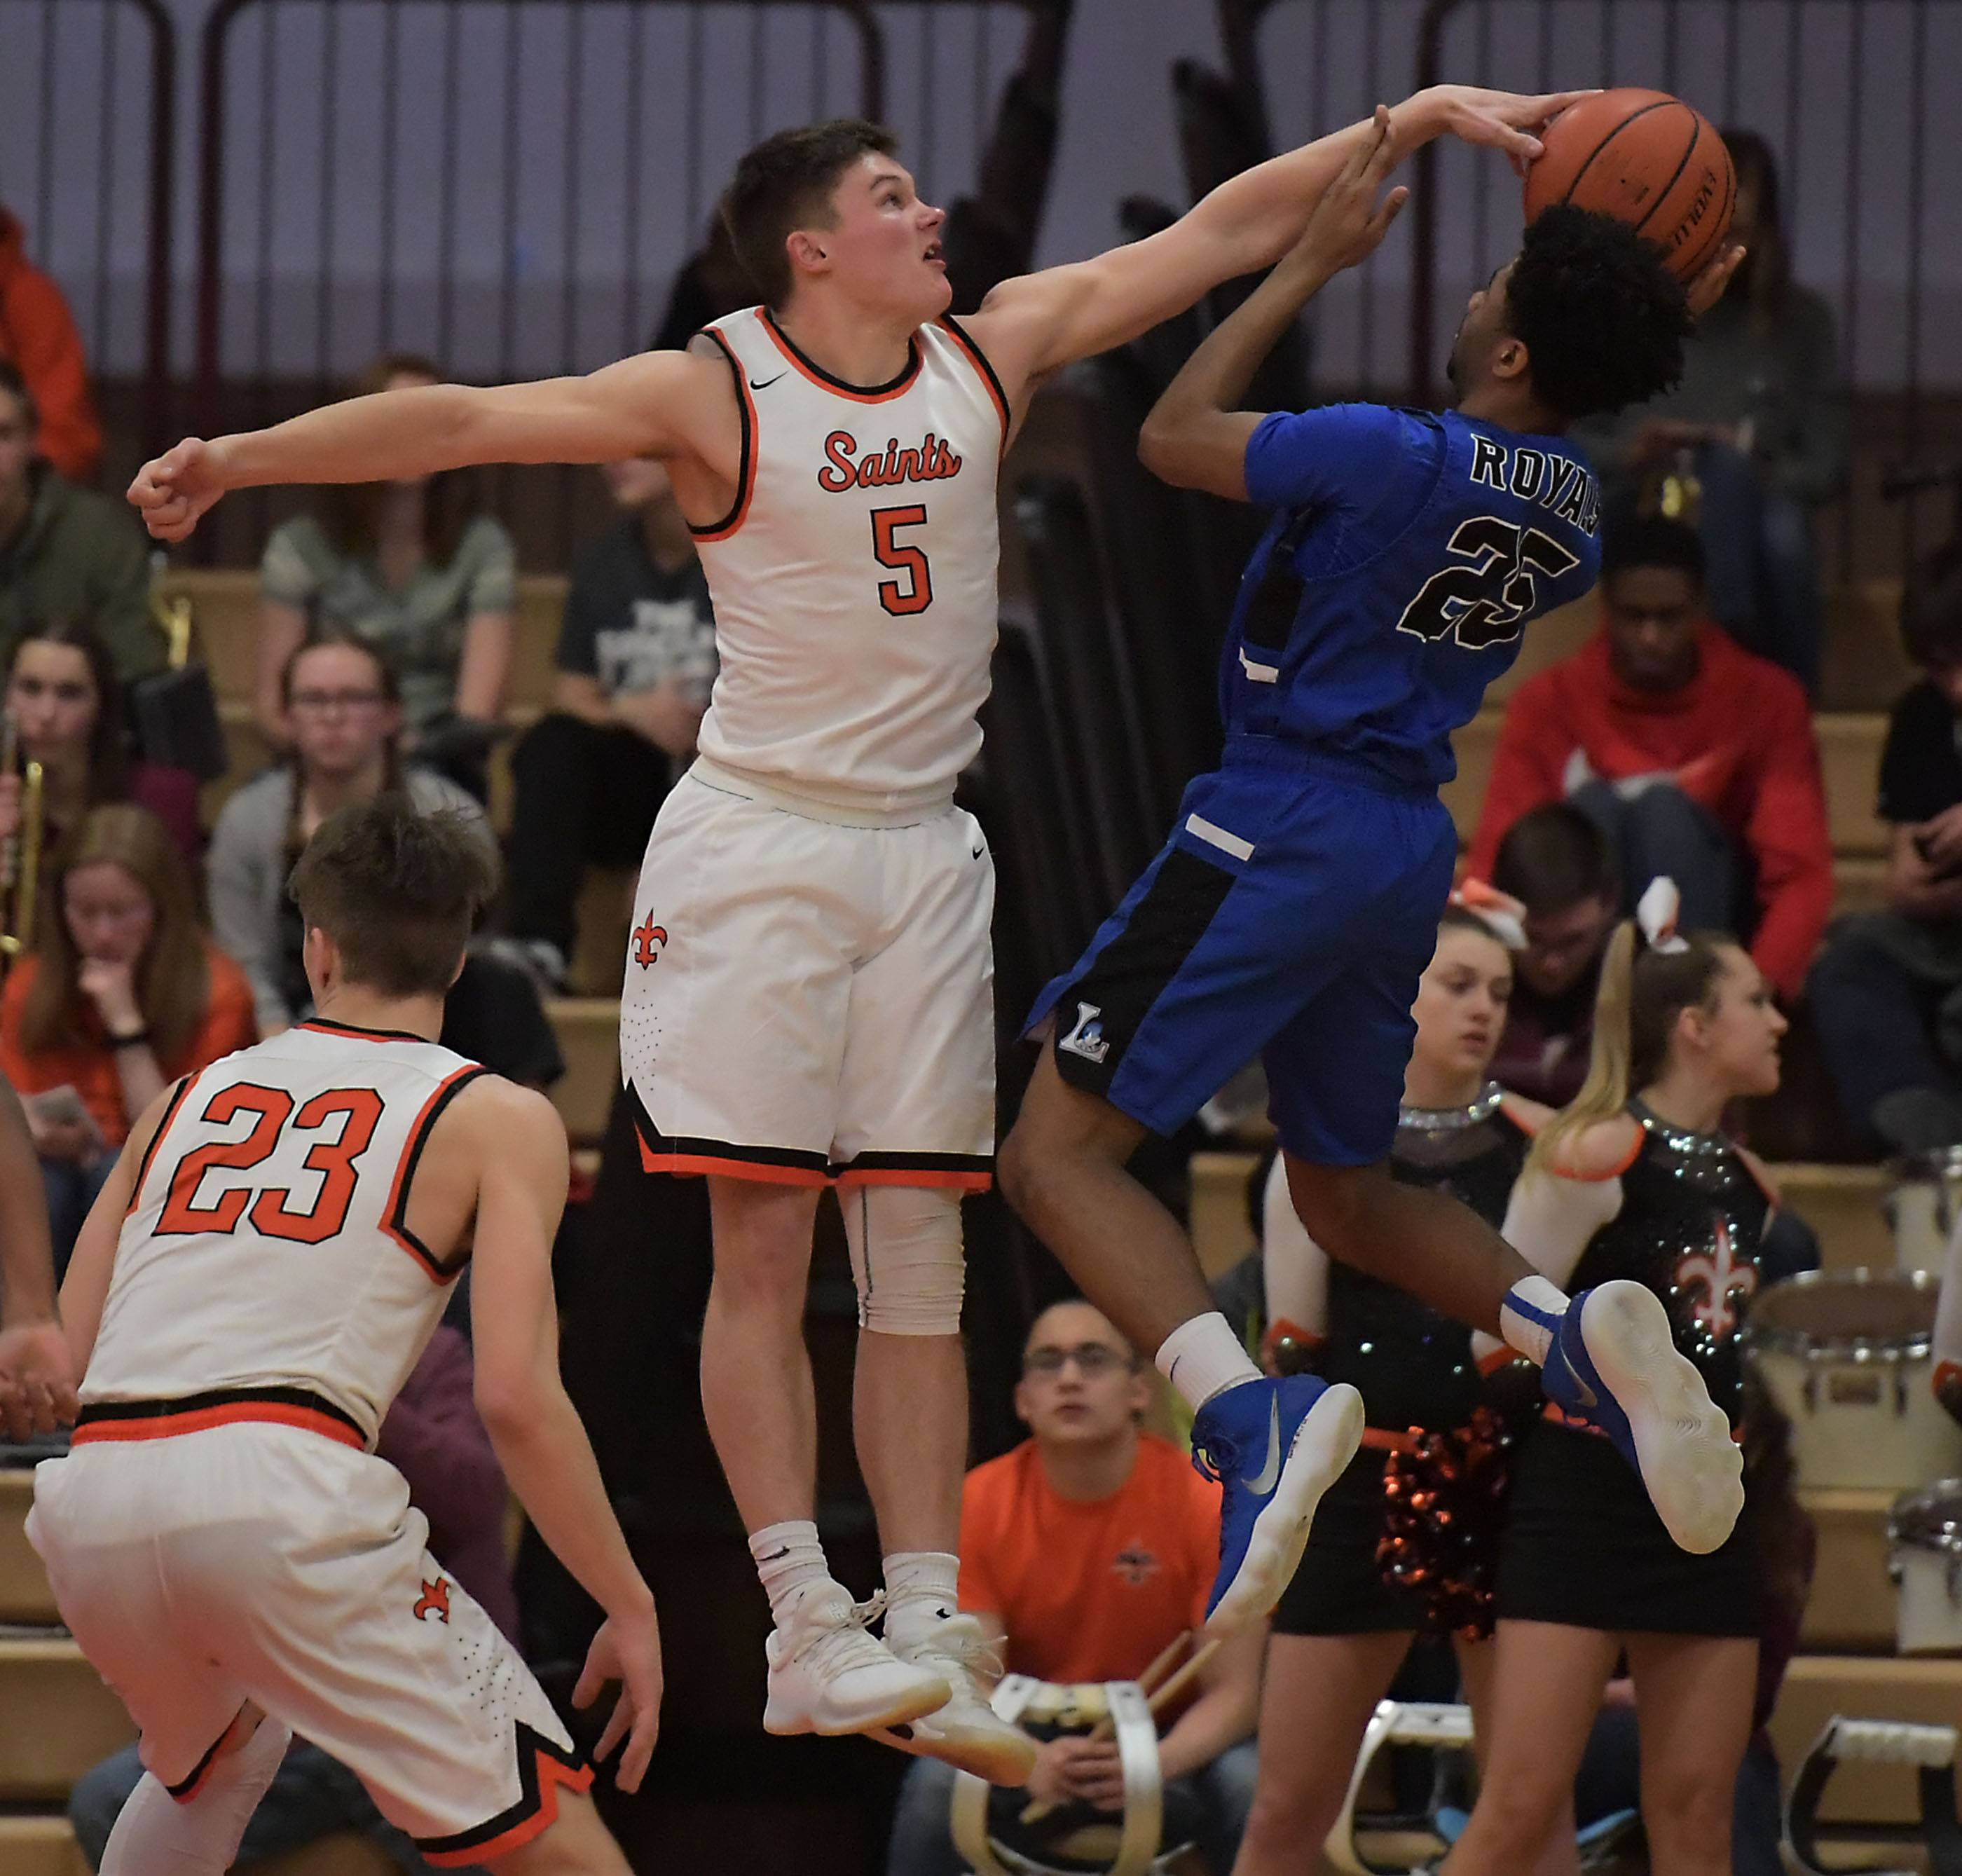 St. Charles East's Zachary Robinson blocks the shot of Larkin's Christopher Rose Thursday in a boys basketball game in St. Charles.